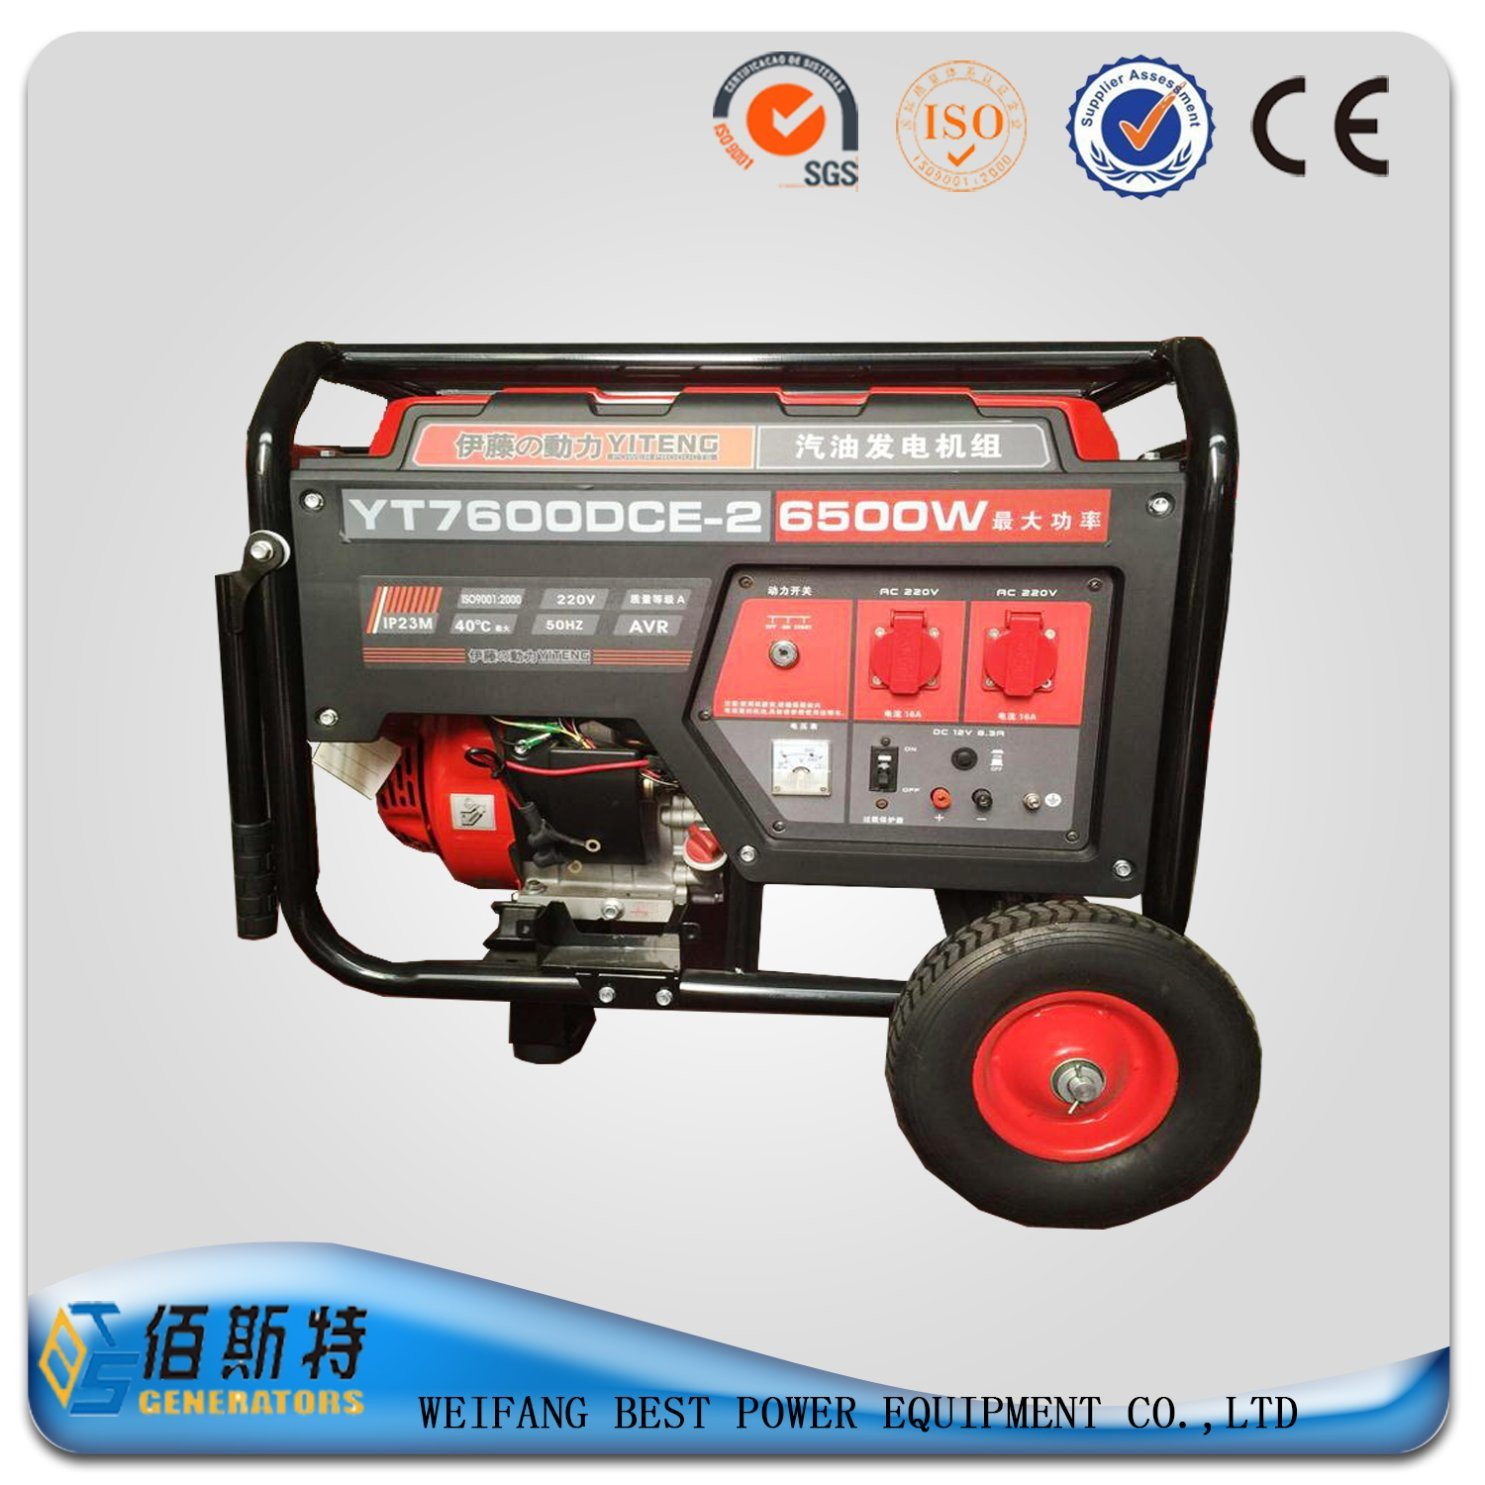 3kw China Brand Home Gasoline Genset with Factory Price G1